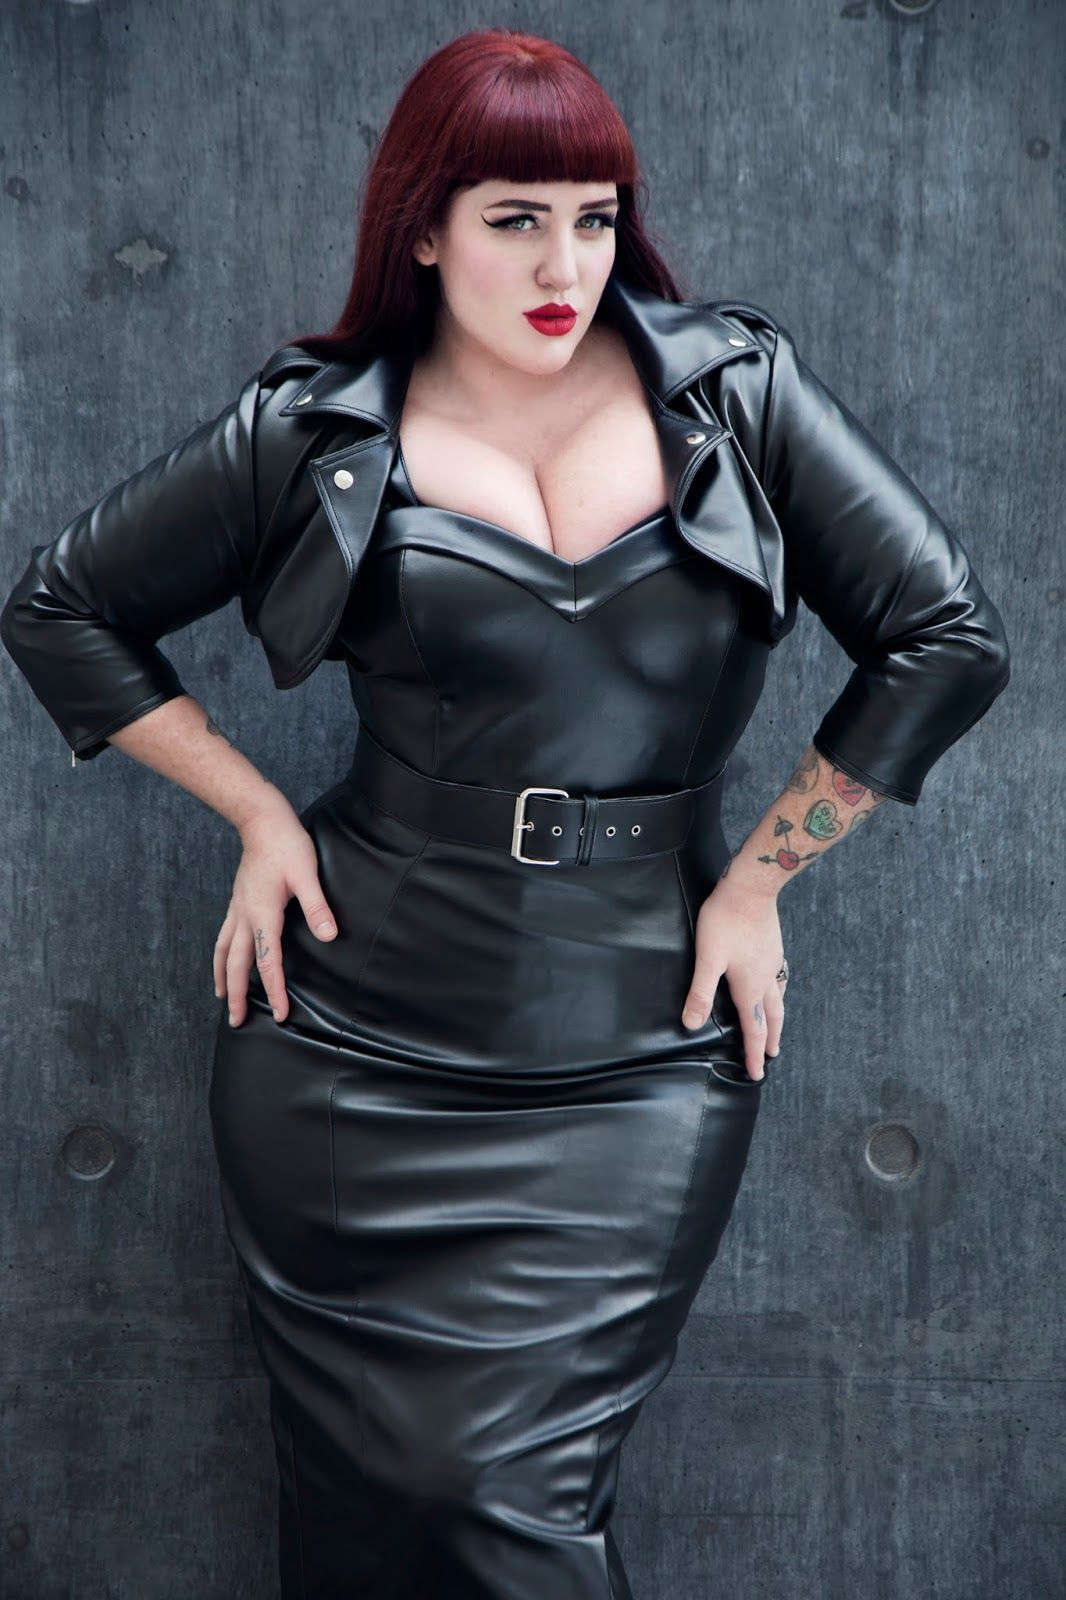 pinseehr on bbw latex | pinterest | latex, leather and curves